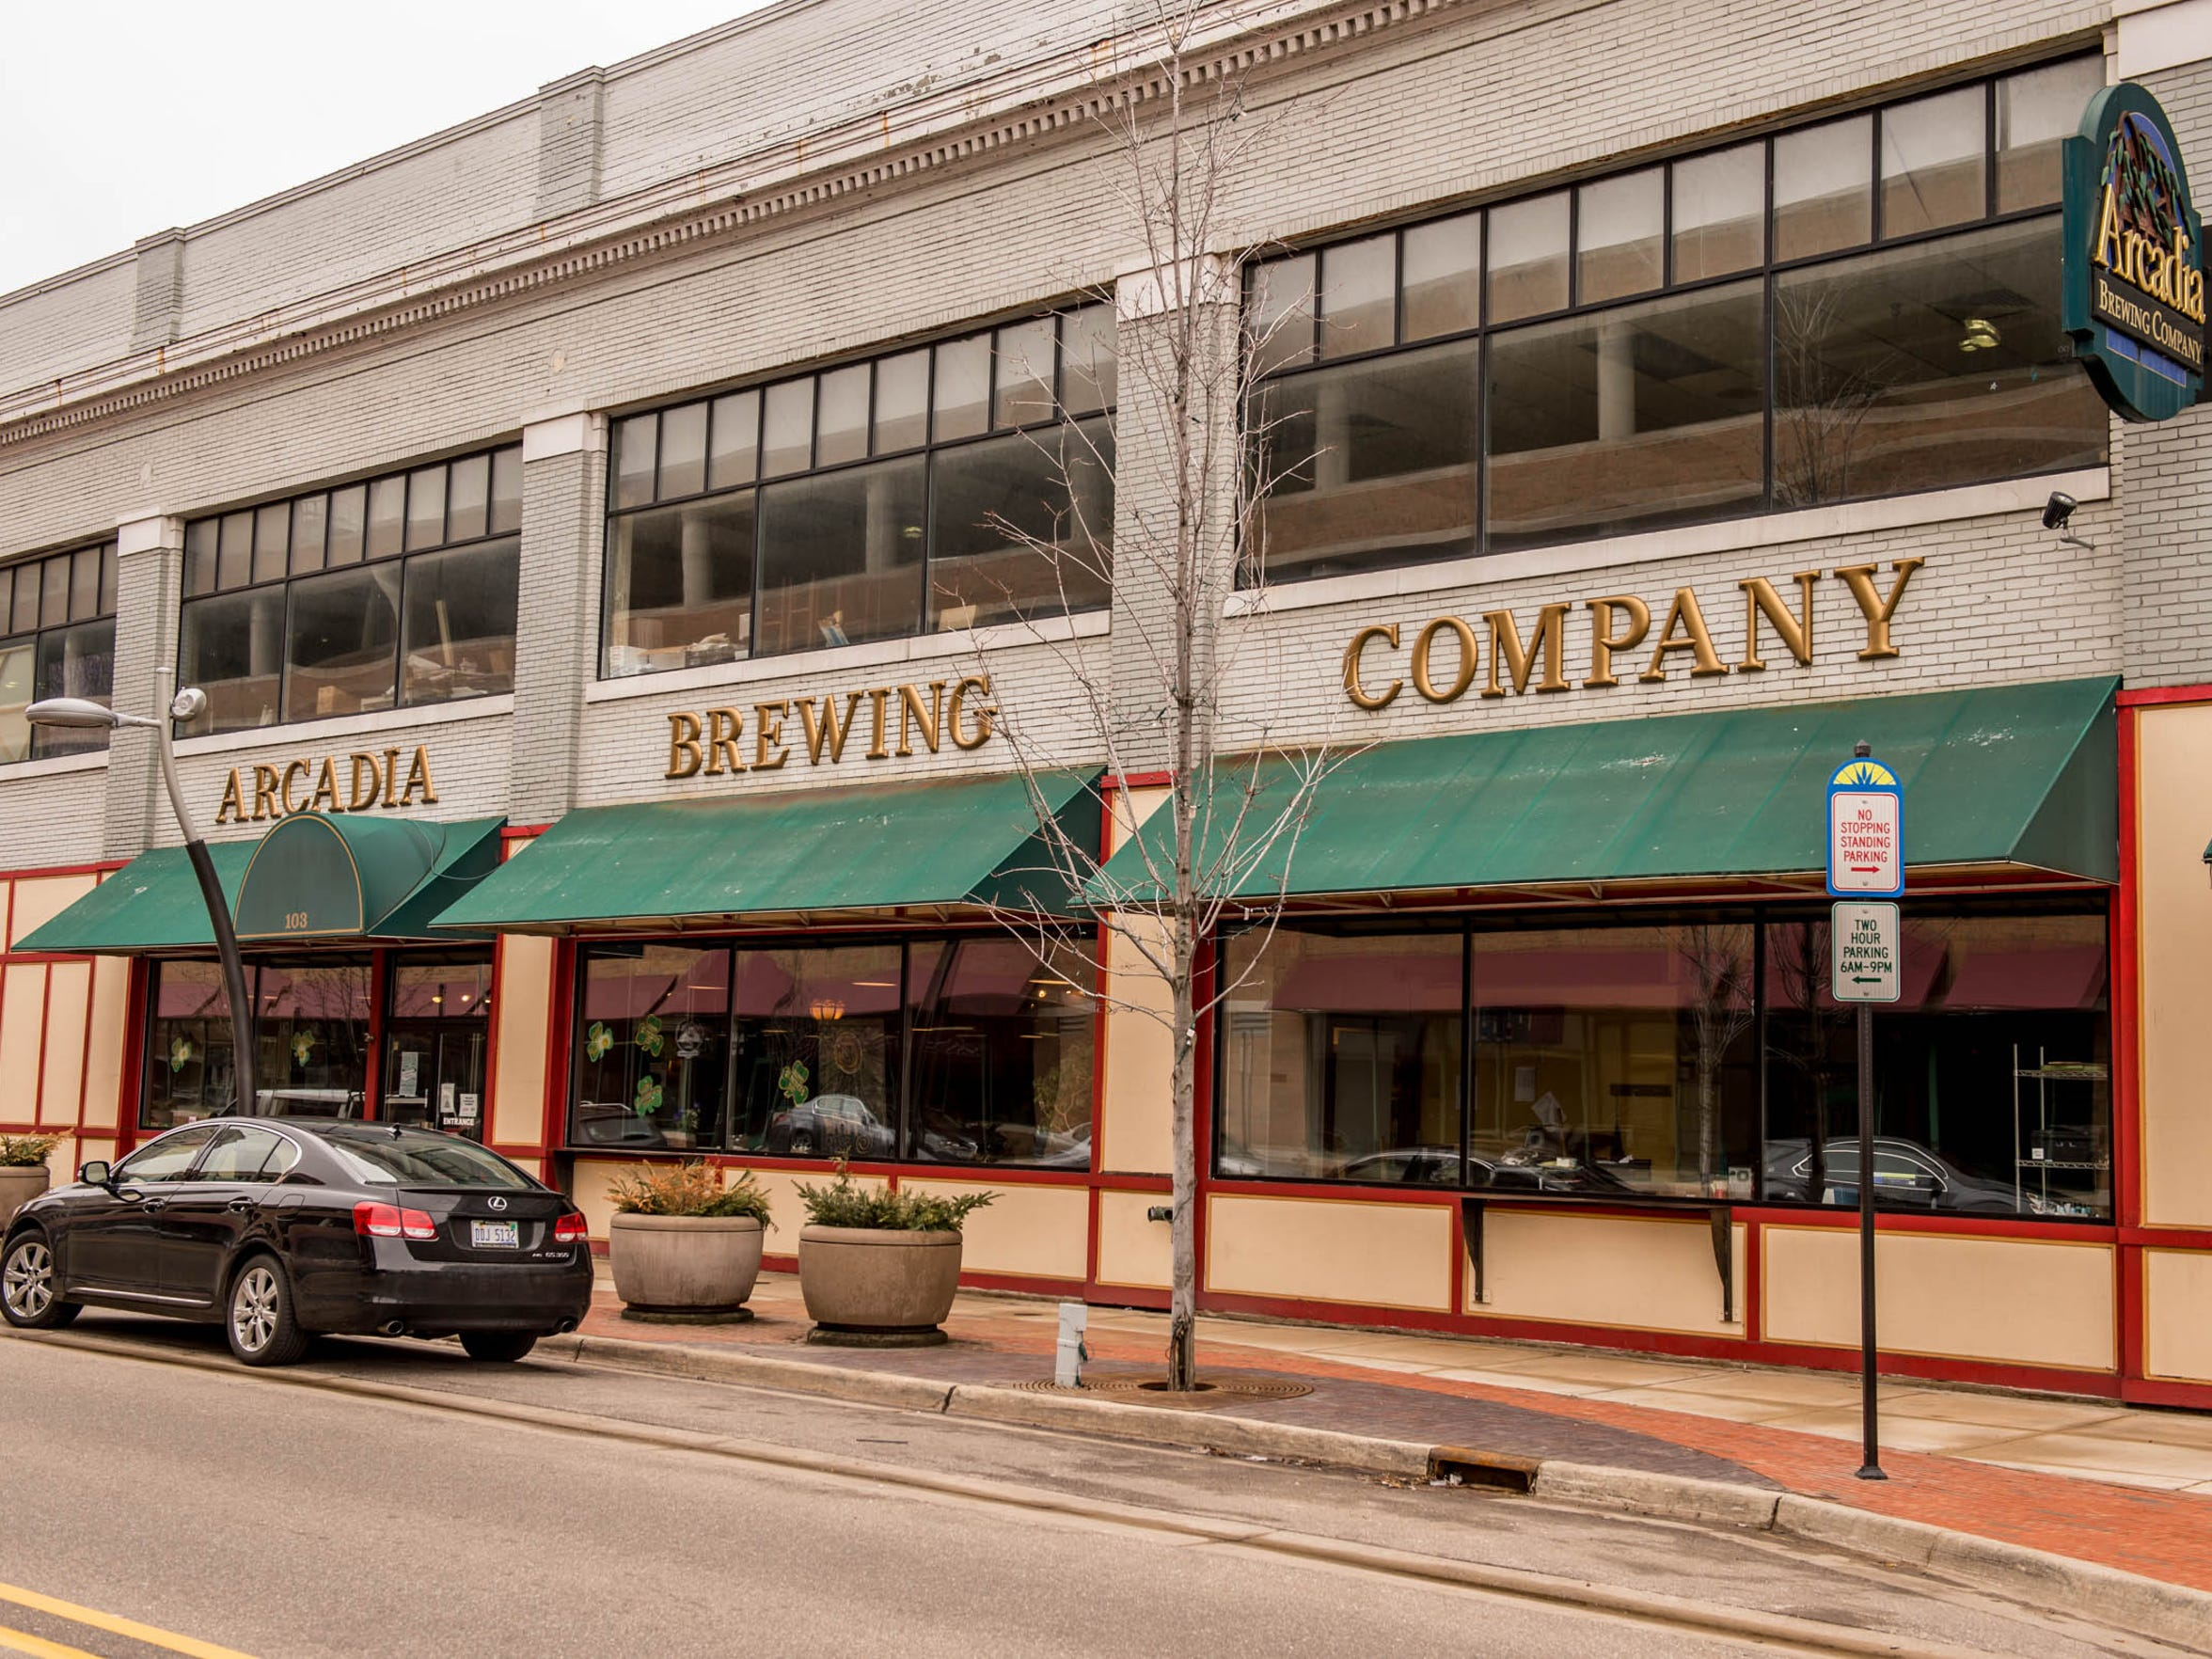 Arcadia Brewing Co. is located at 103 W. Michigan Ave.